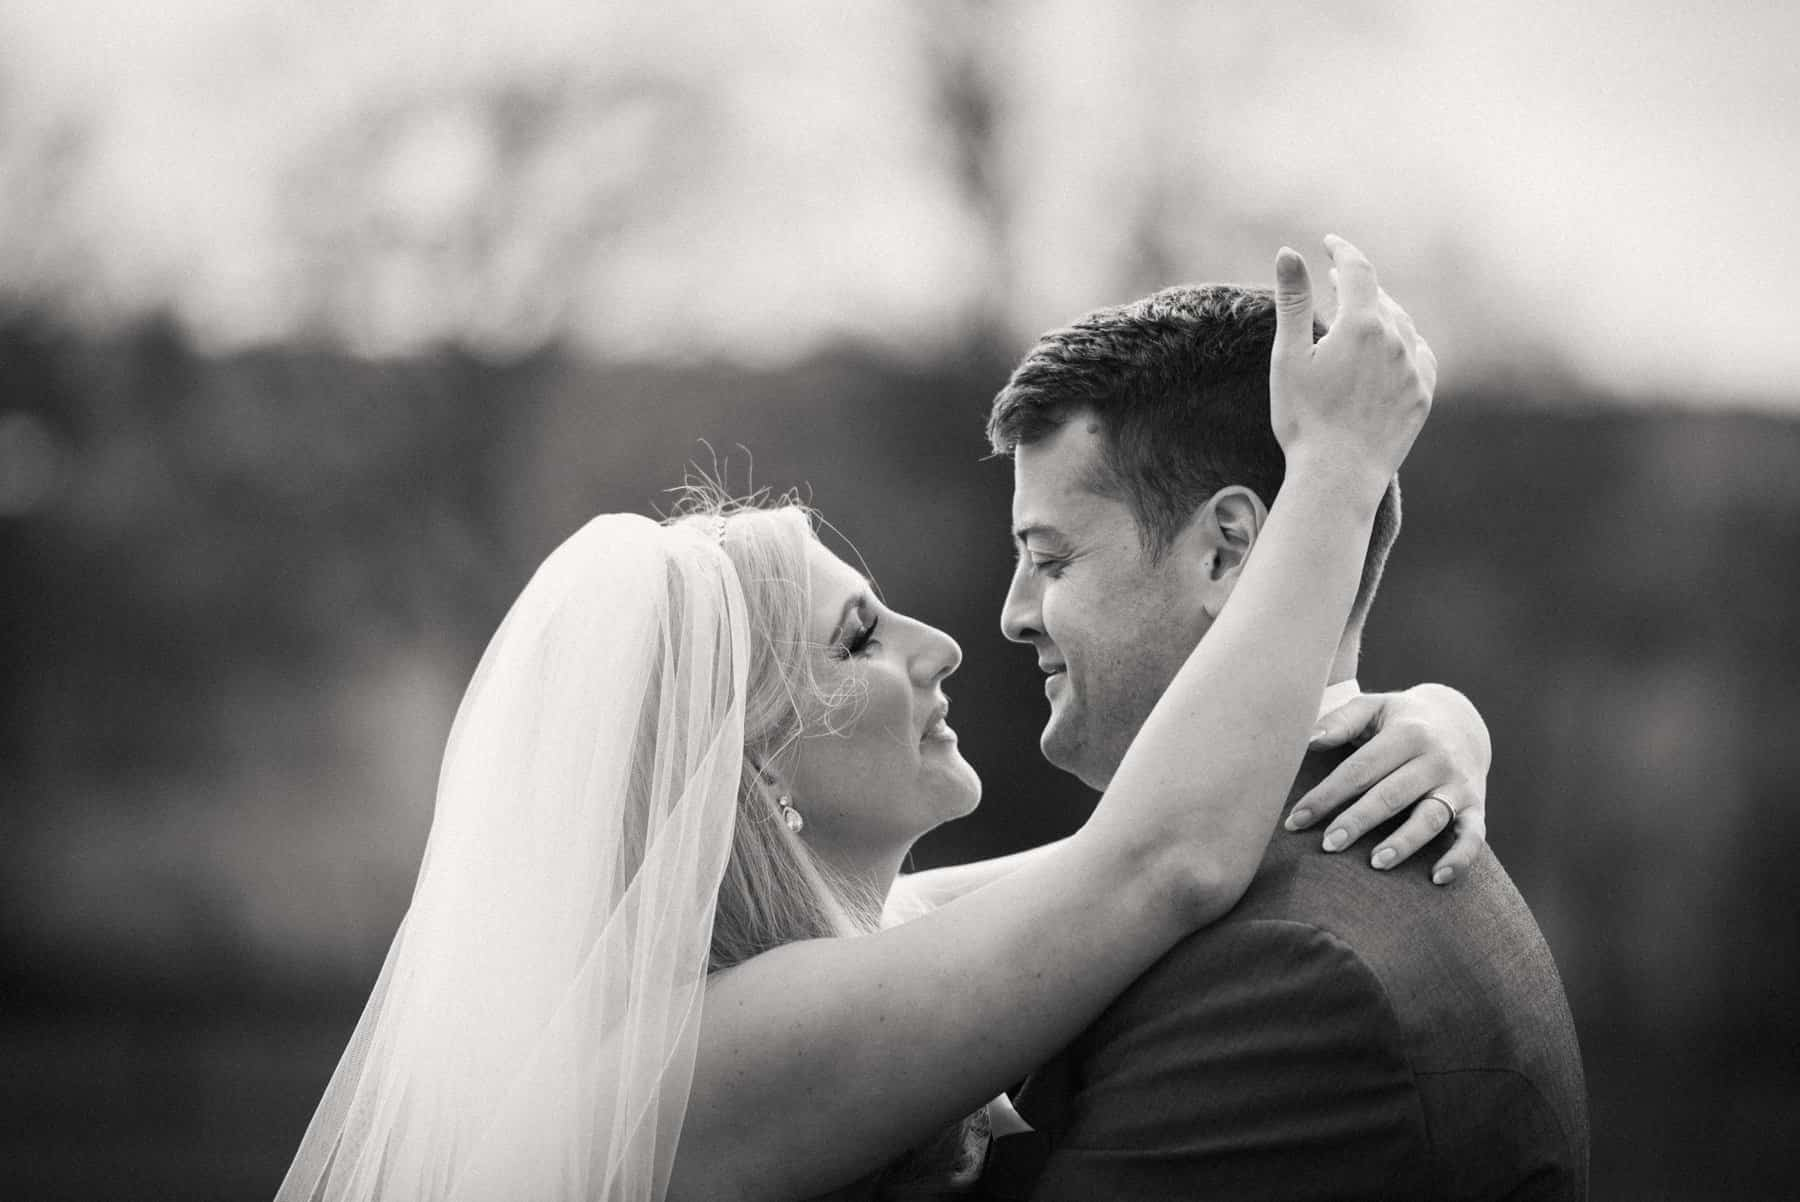 wedding photography bride and groom portrait (1 of 1)